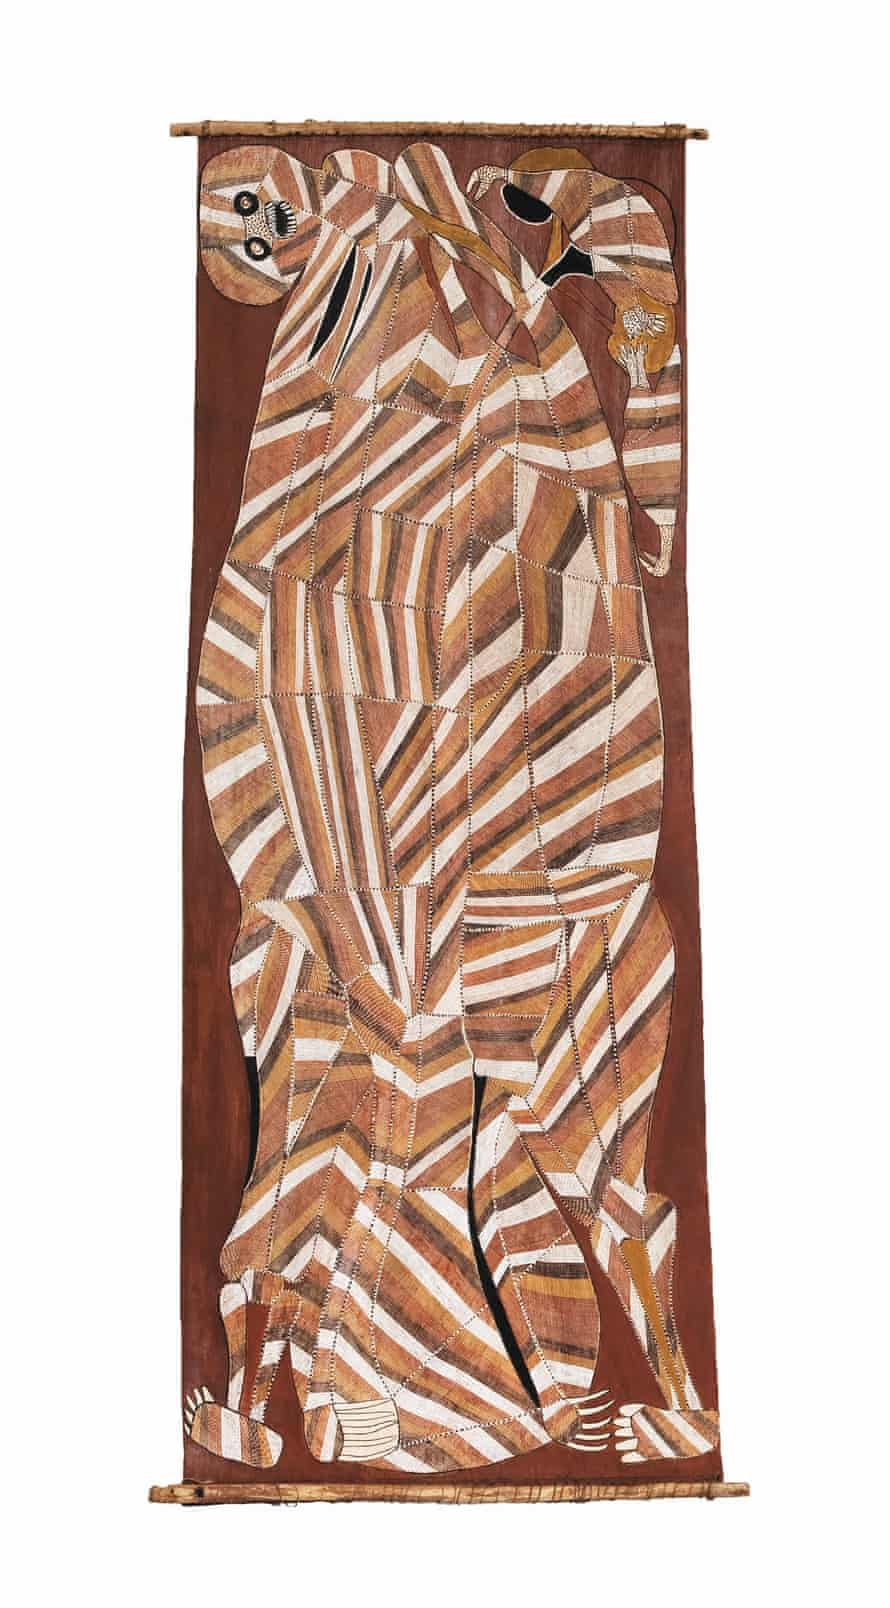 Nawarramulmul (Shooting star spirit) 1988. Earth pigments on Stringybark (Eucalyptus tetrodonta). Purchased with funds donated by Mr and Mrs Jim Bain, 1989.